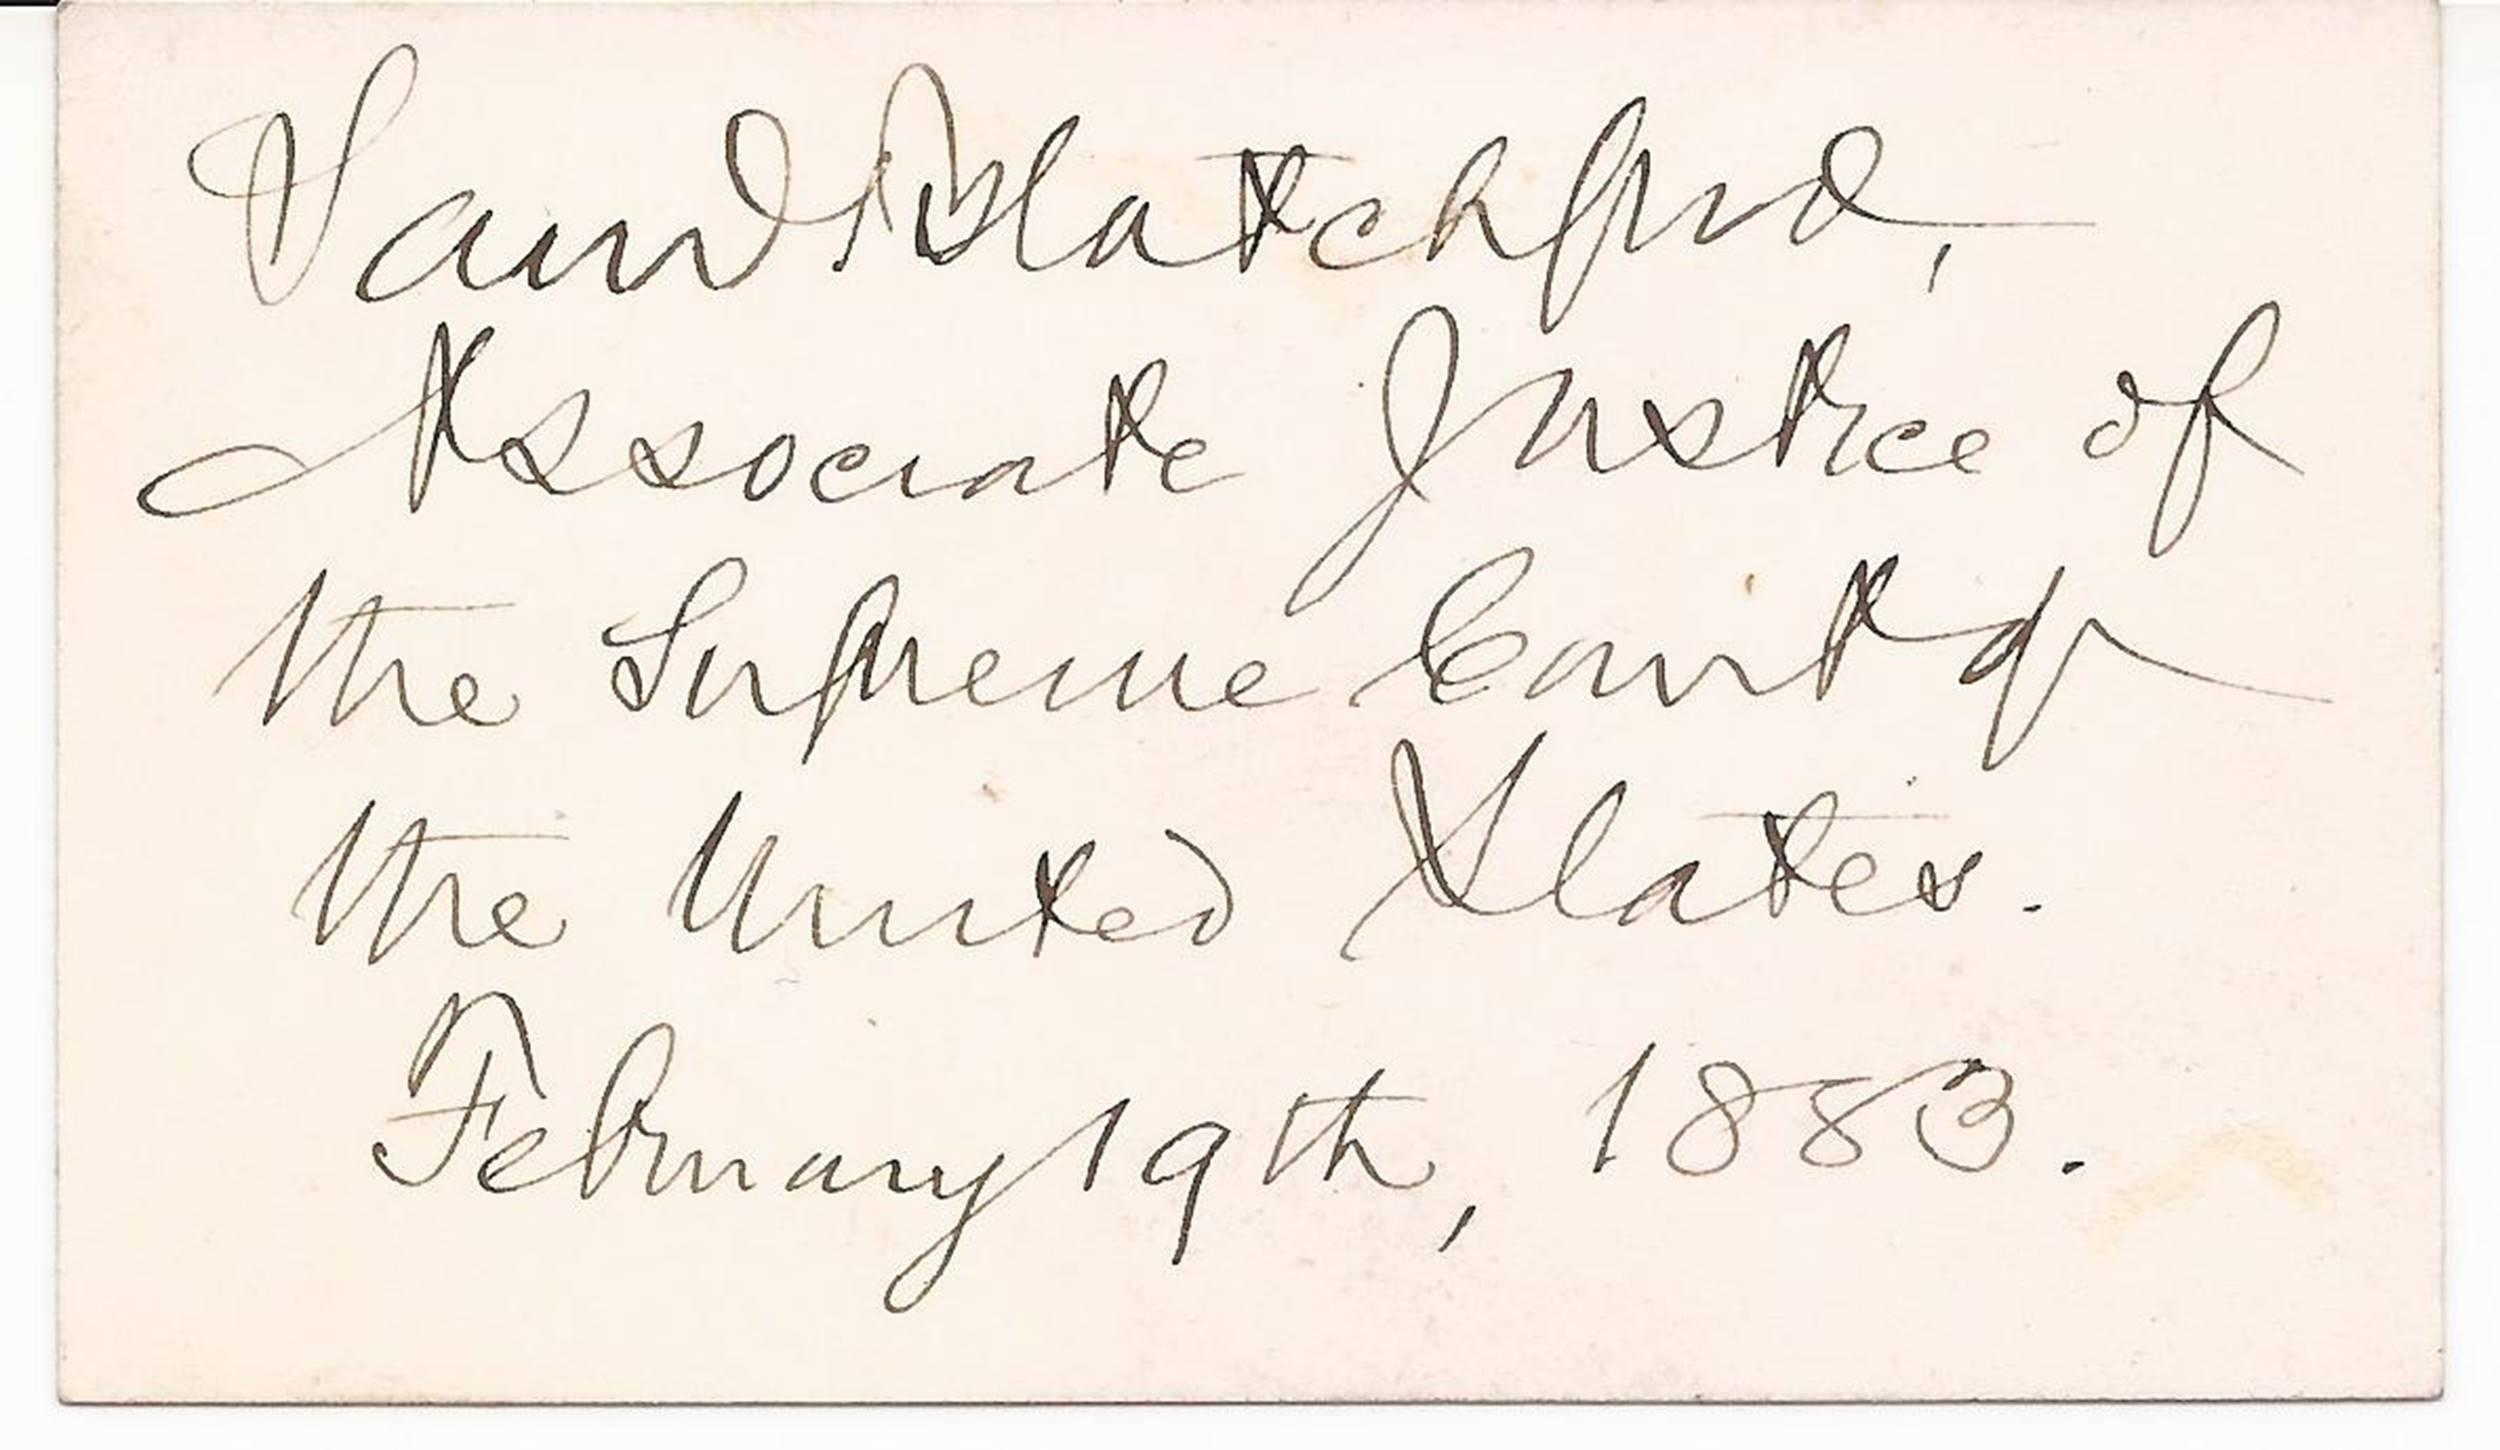 Supreme Court Justice Samuel Blatchford Signs Note or Calling Card